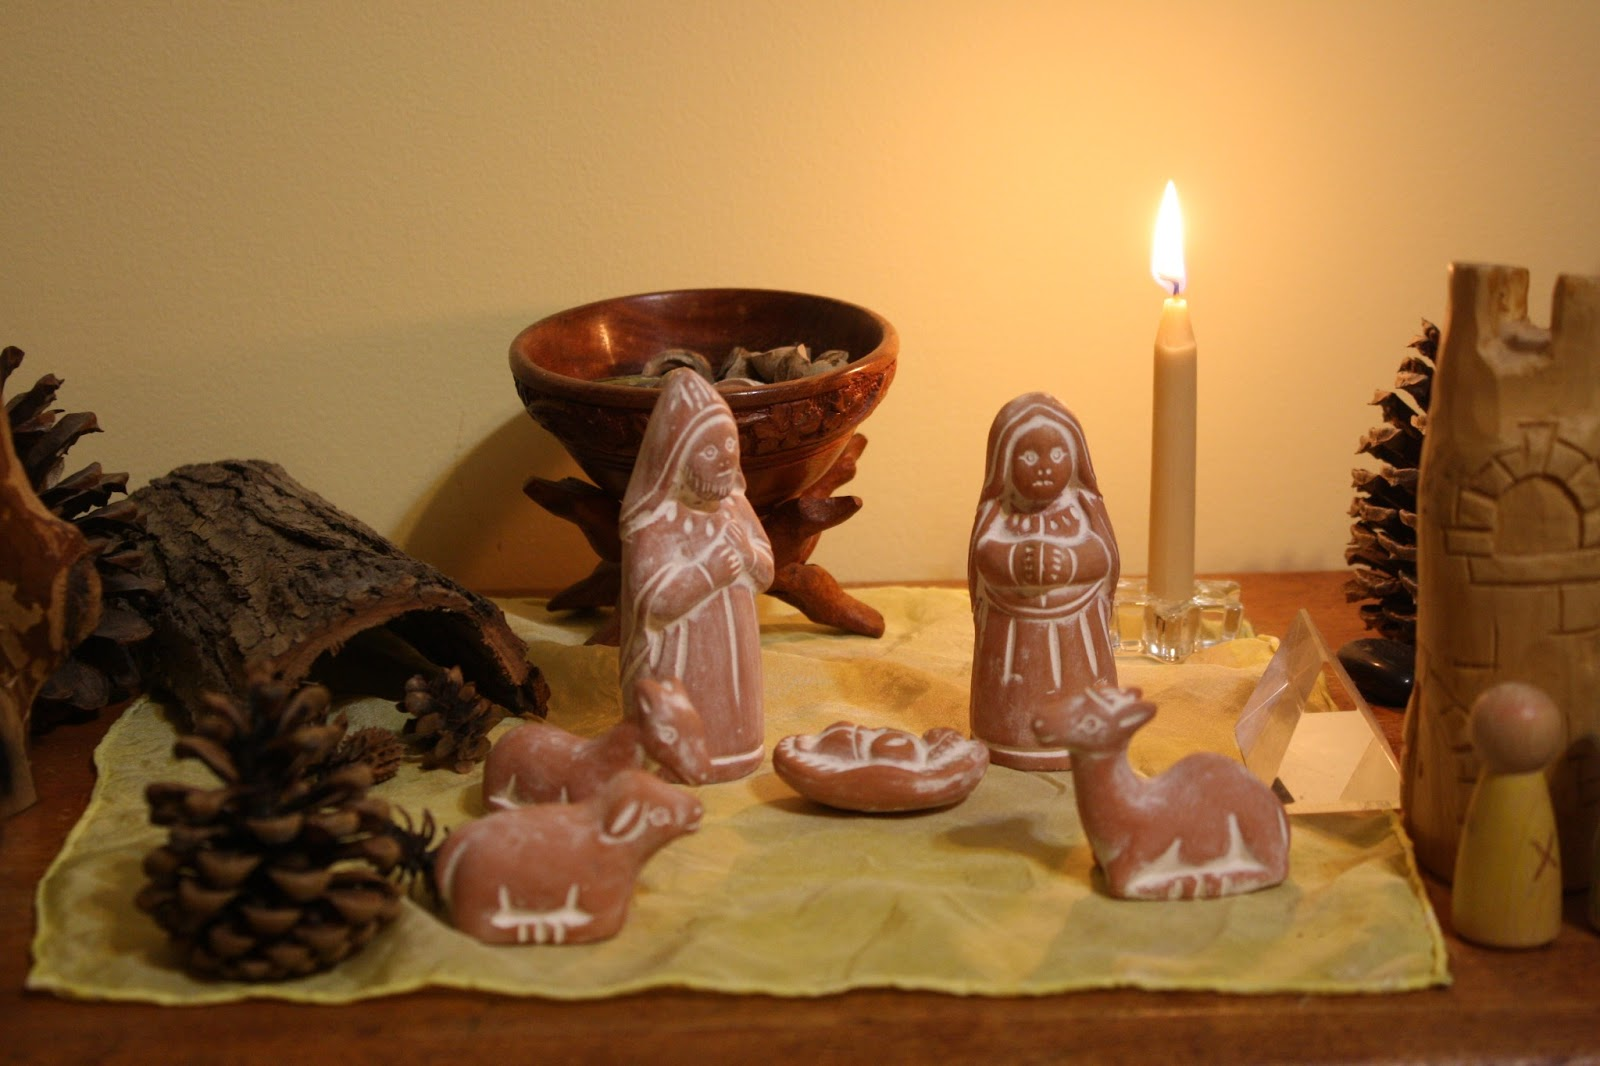 Winter nature table - During The Holidays Our Nature Table Reflected Our Reverence For The Christ Child